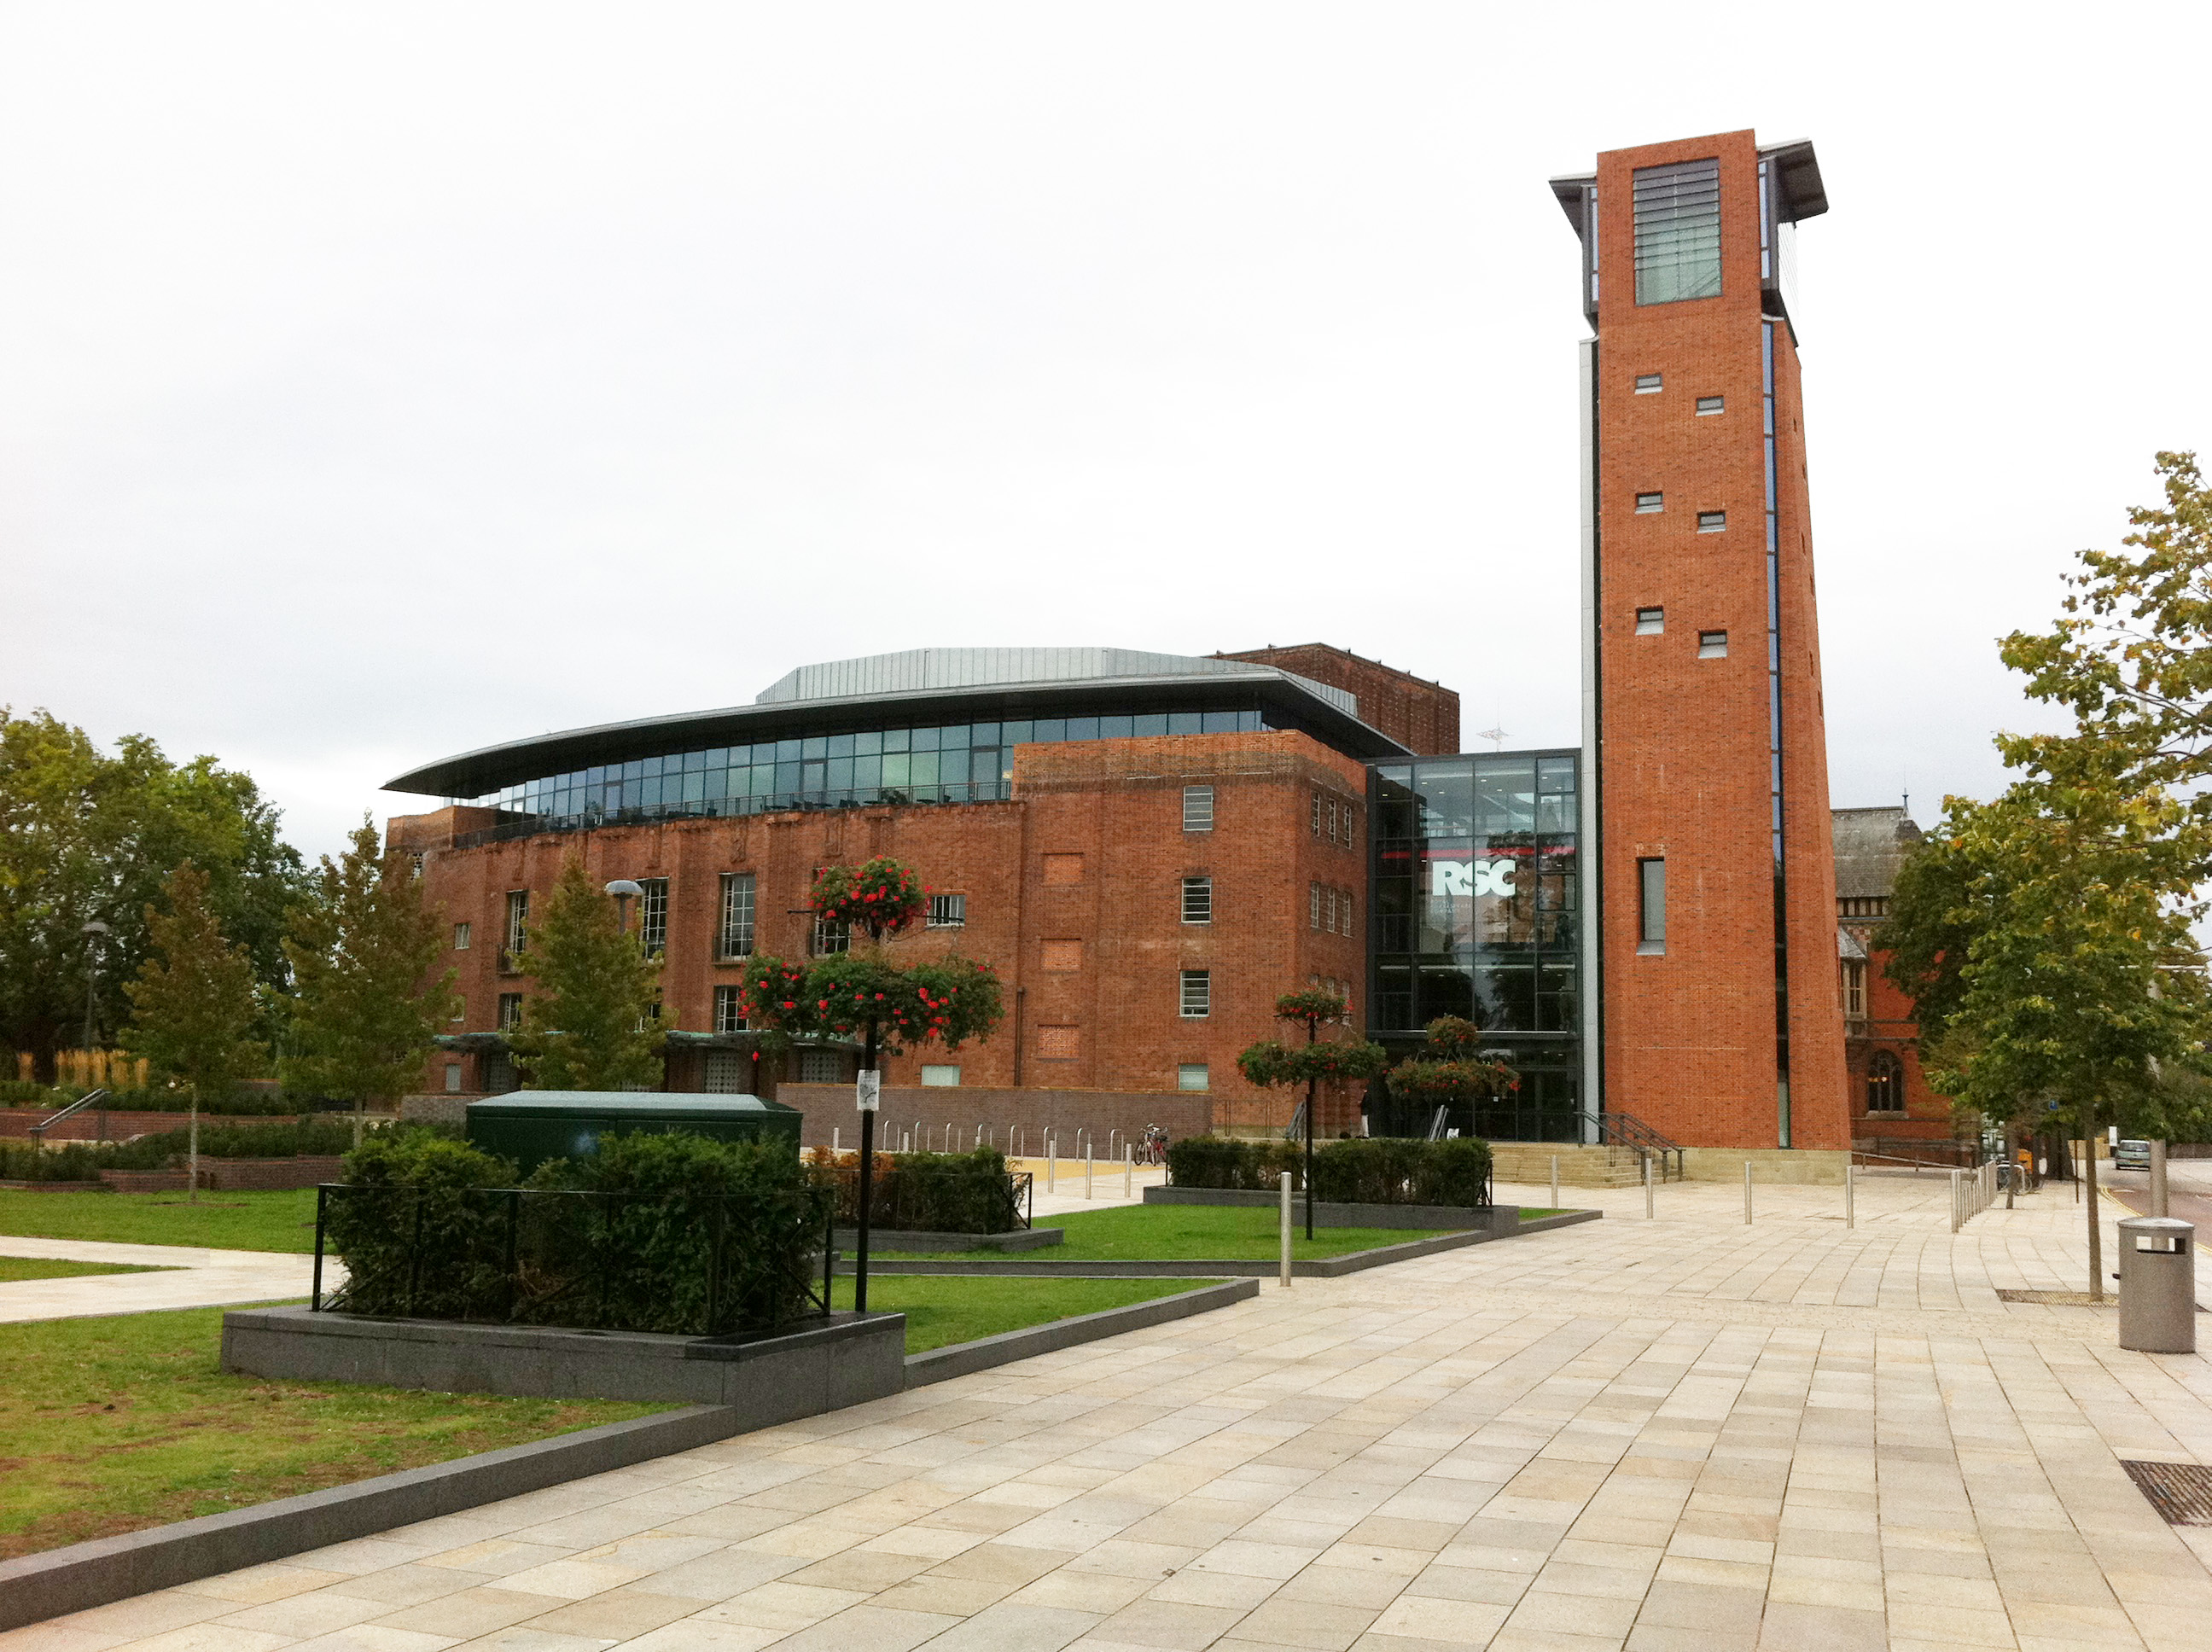 ''Renovated Royal Shakespeare Theatre'' in [[Stratford-upon-Avon